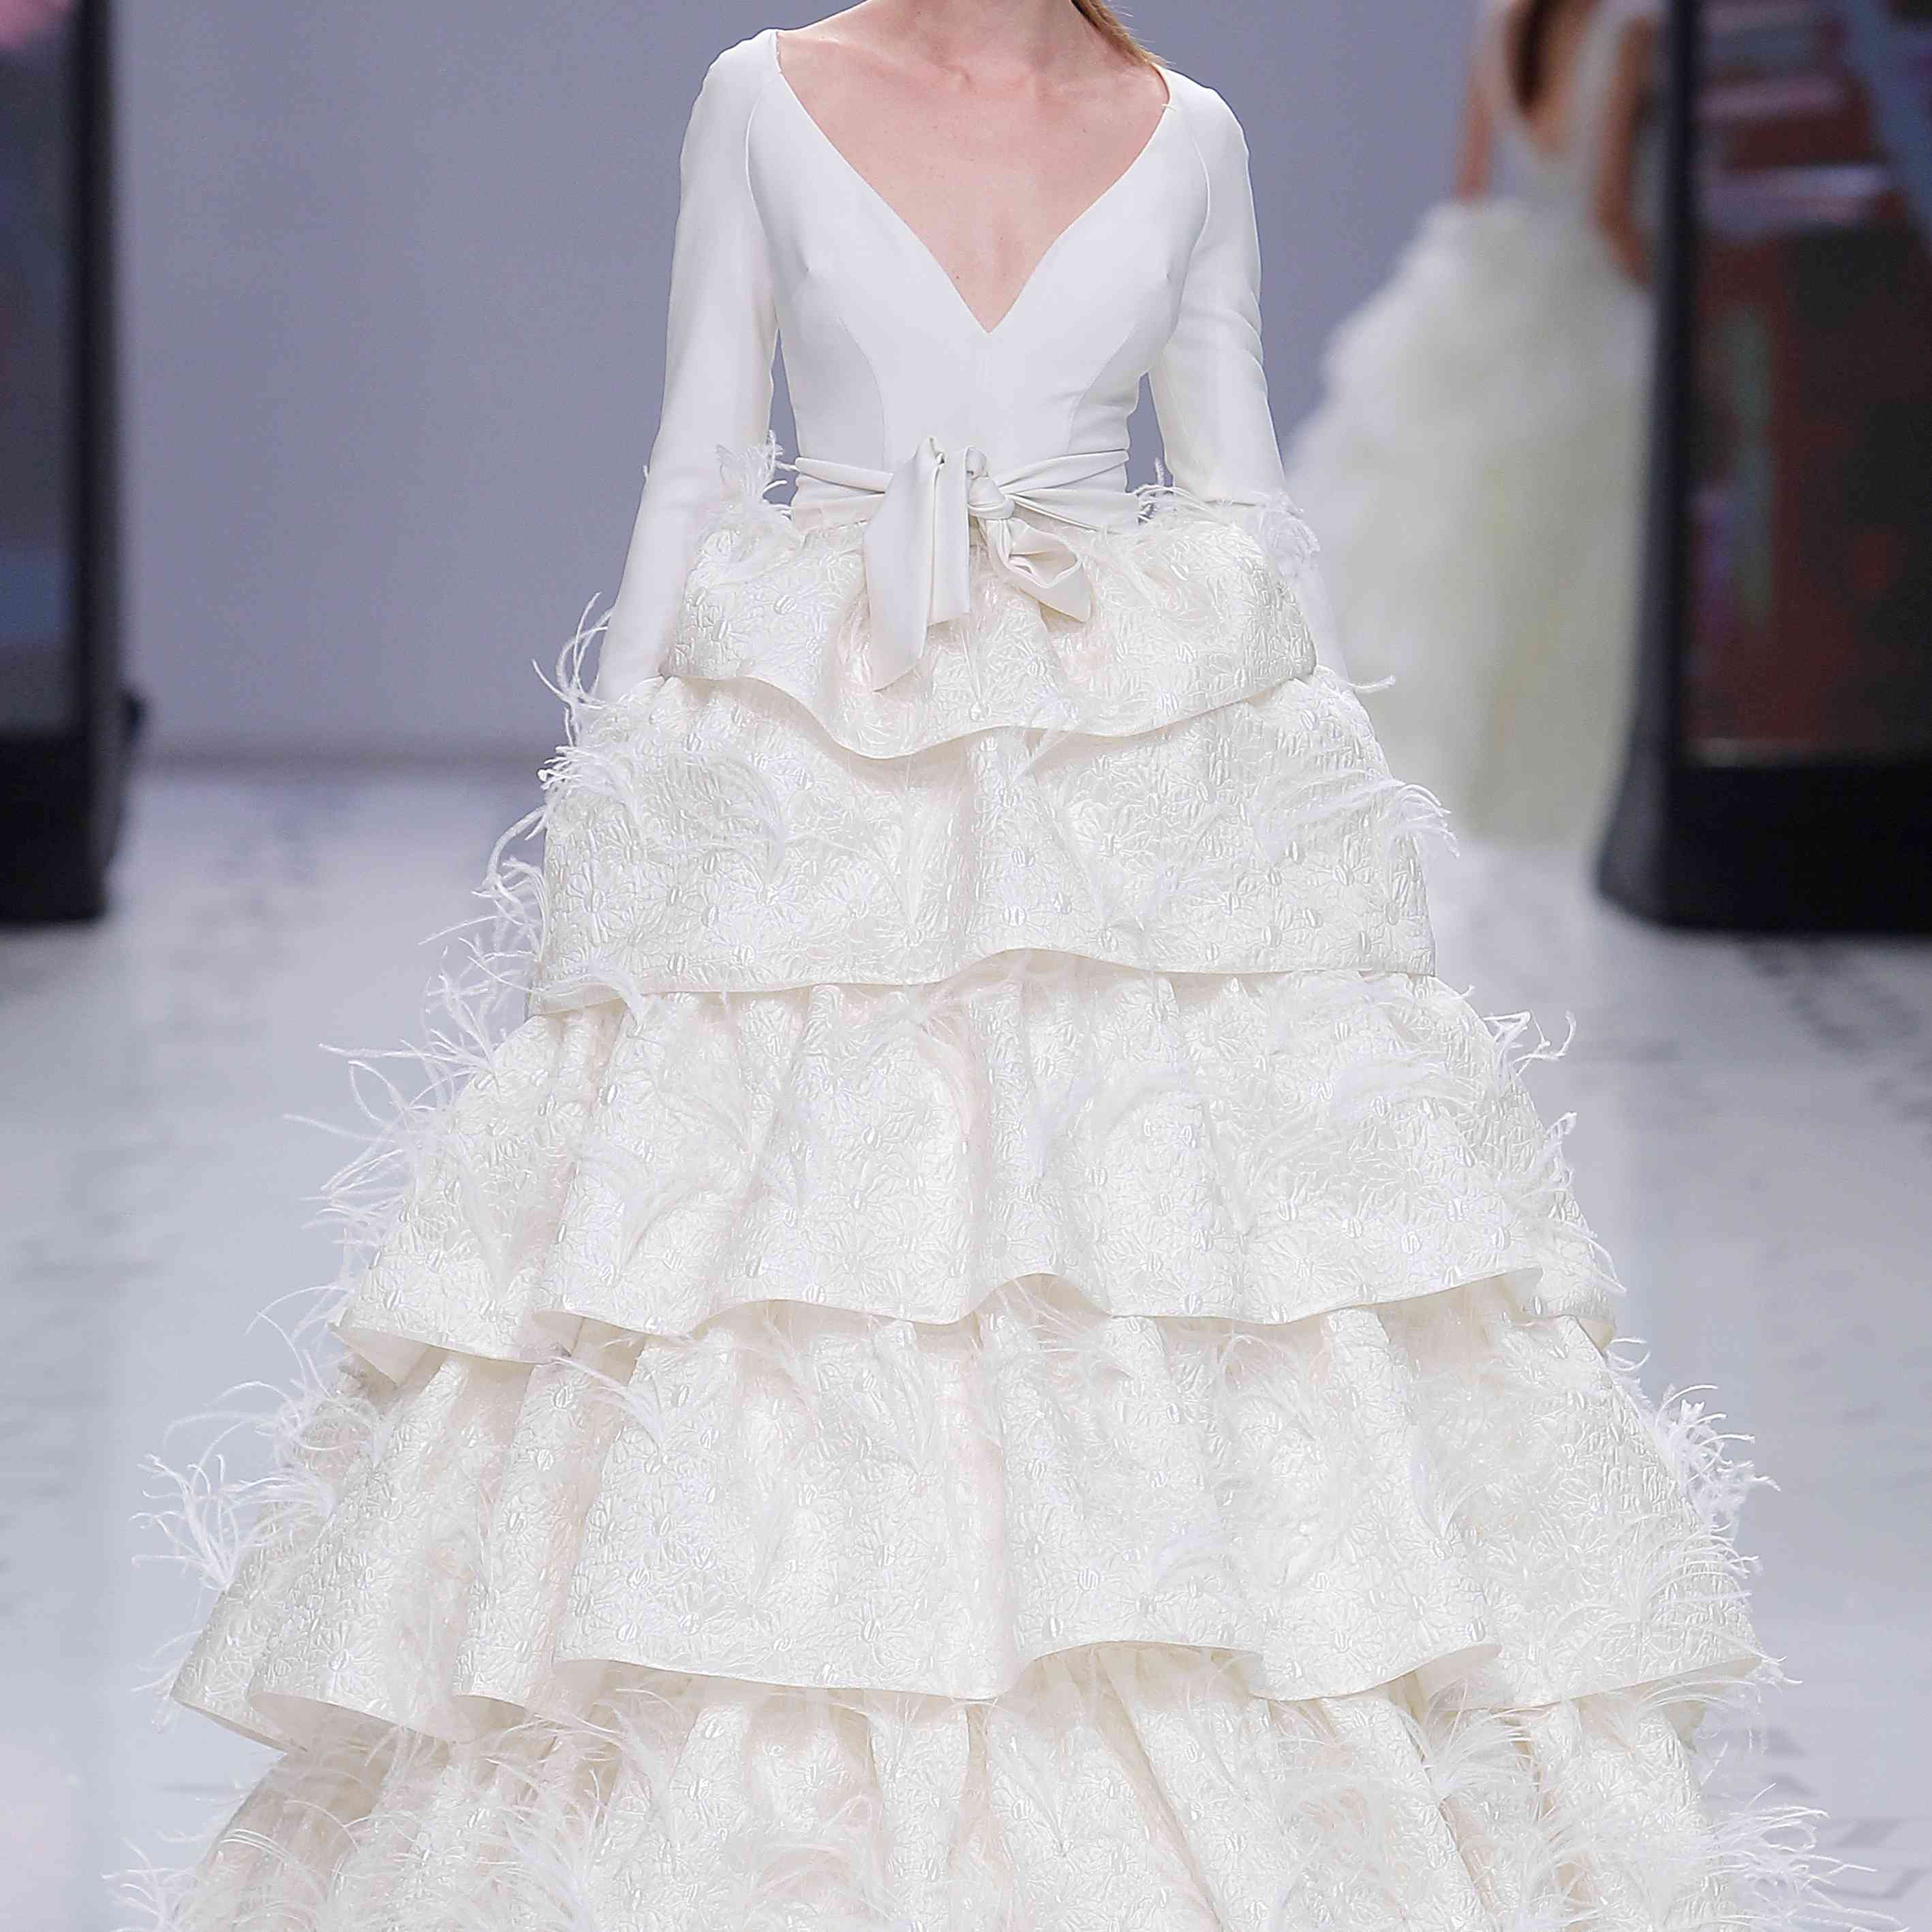 Model in a voluminous princess dress with layers of cloqué ruffles decorated with hand-sewn ostrich feathers and a deep V-neck bodice with raglan sleeves finished with a knotted belt at the waist